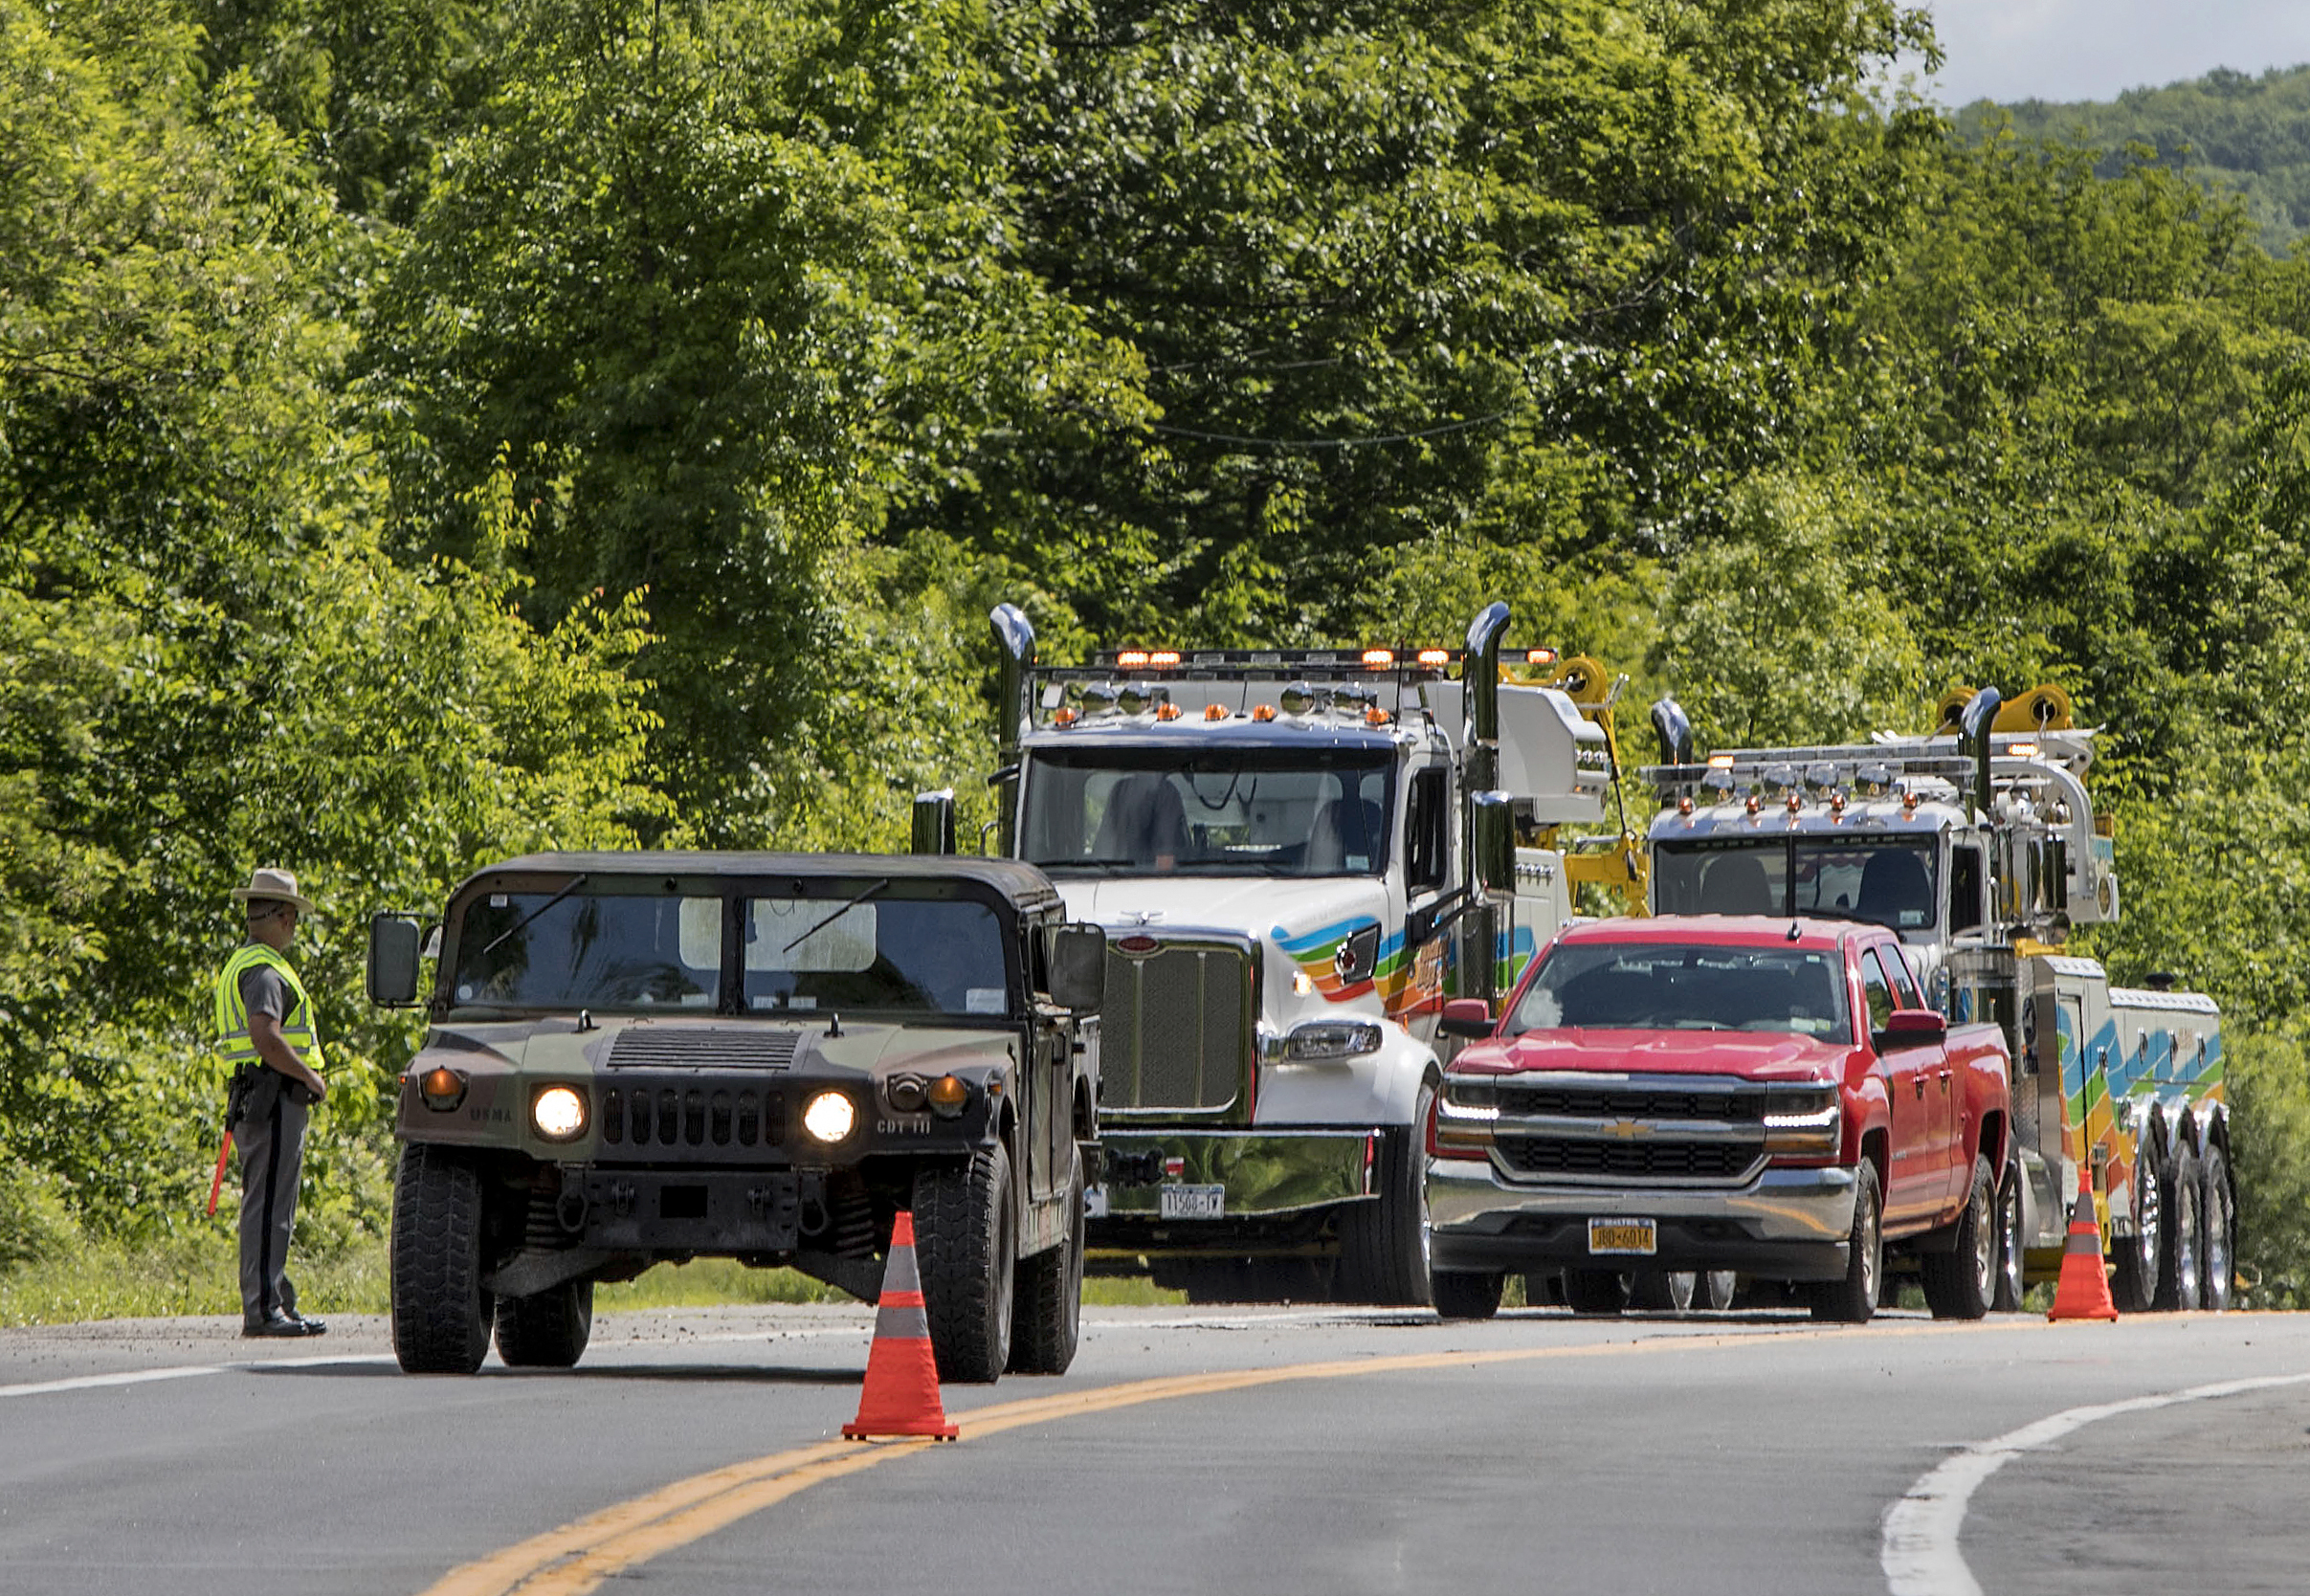 West Point Accident Kills At Least One Injures Almost Two Dozen